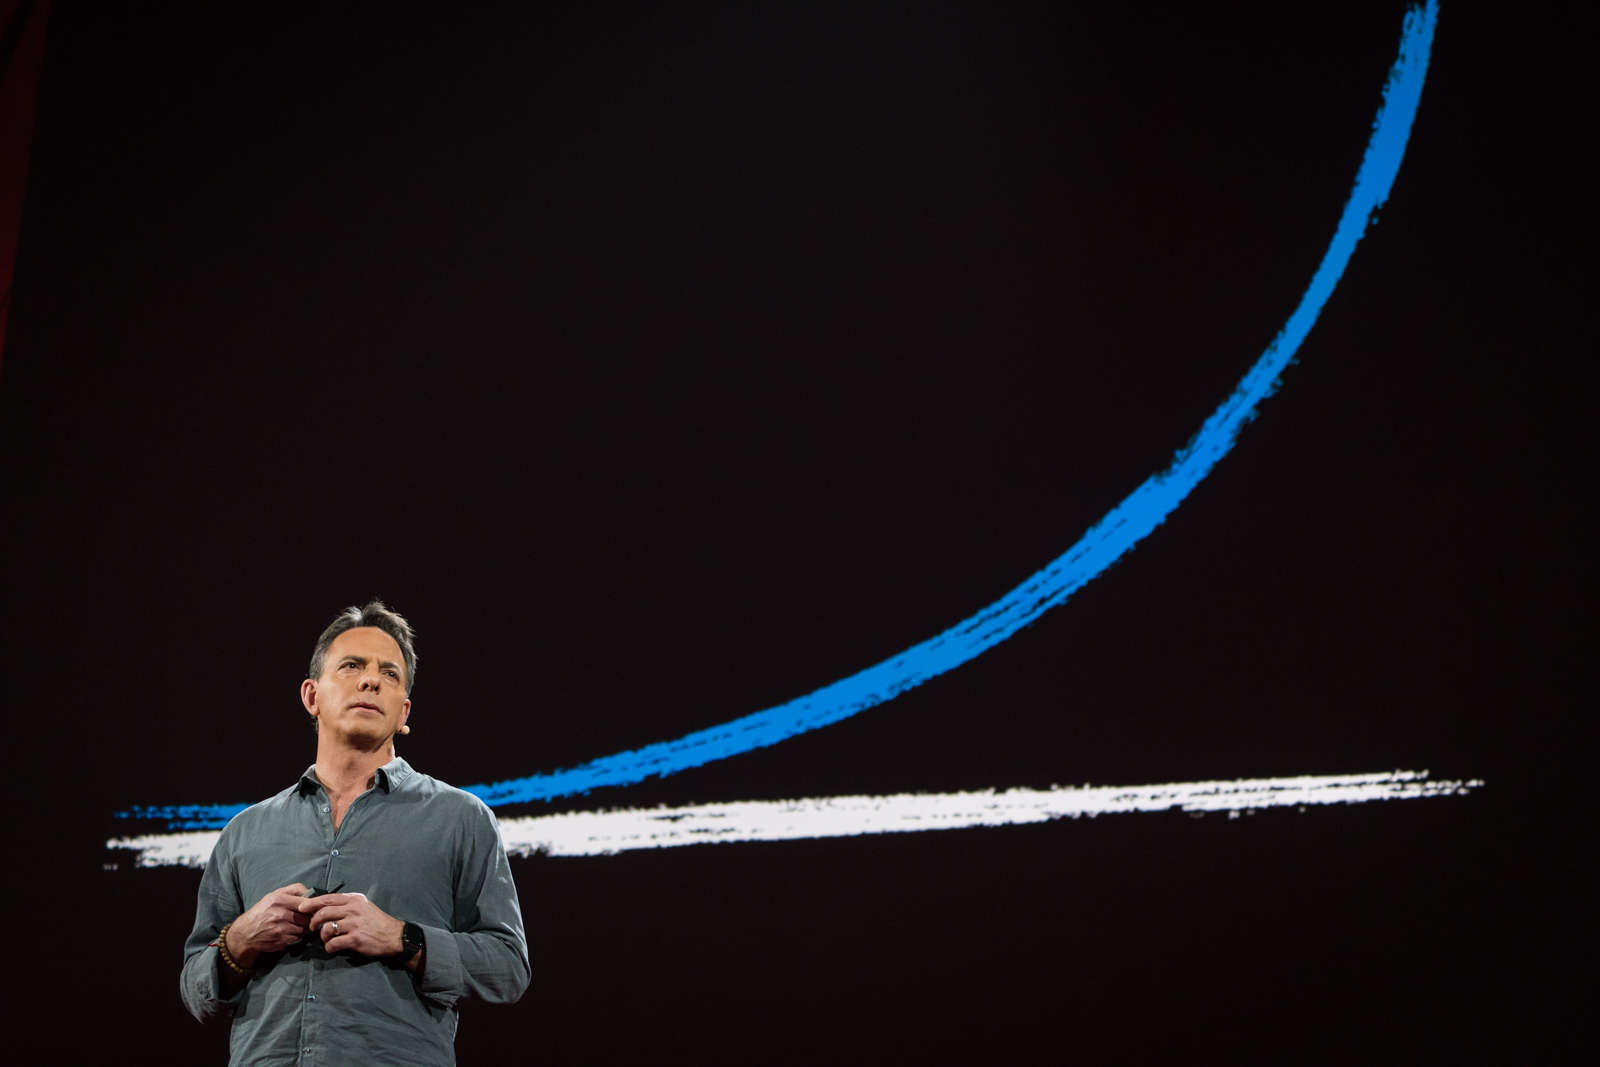 Dan Pallotta speaks at TED2016 - Dream, February 15-19, 2016, Vancouver Convention Center, Vancouver, Canada. Photo: Bret Hartman / TED